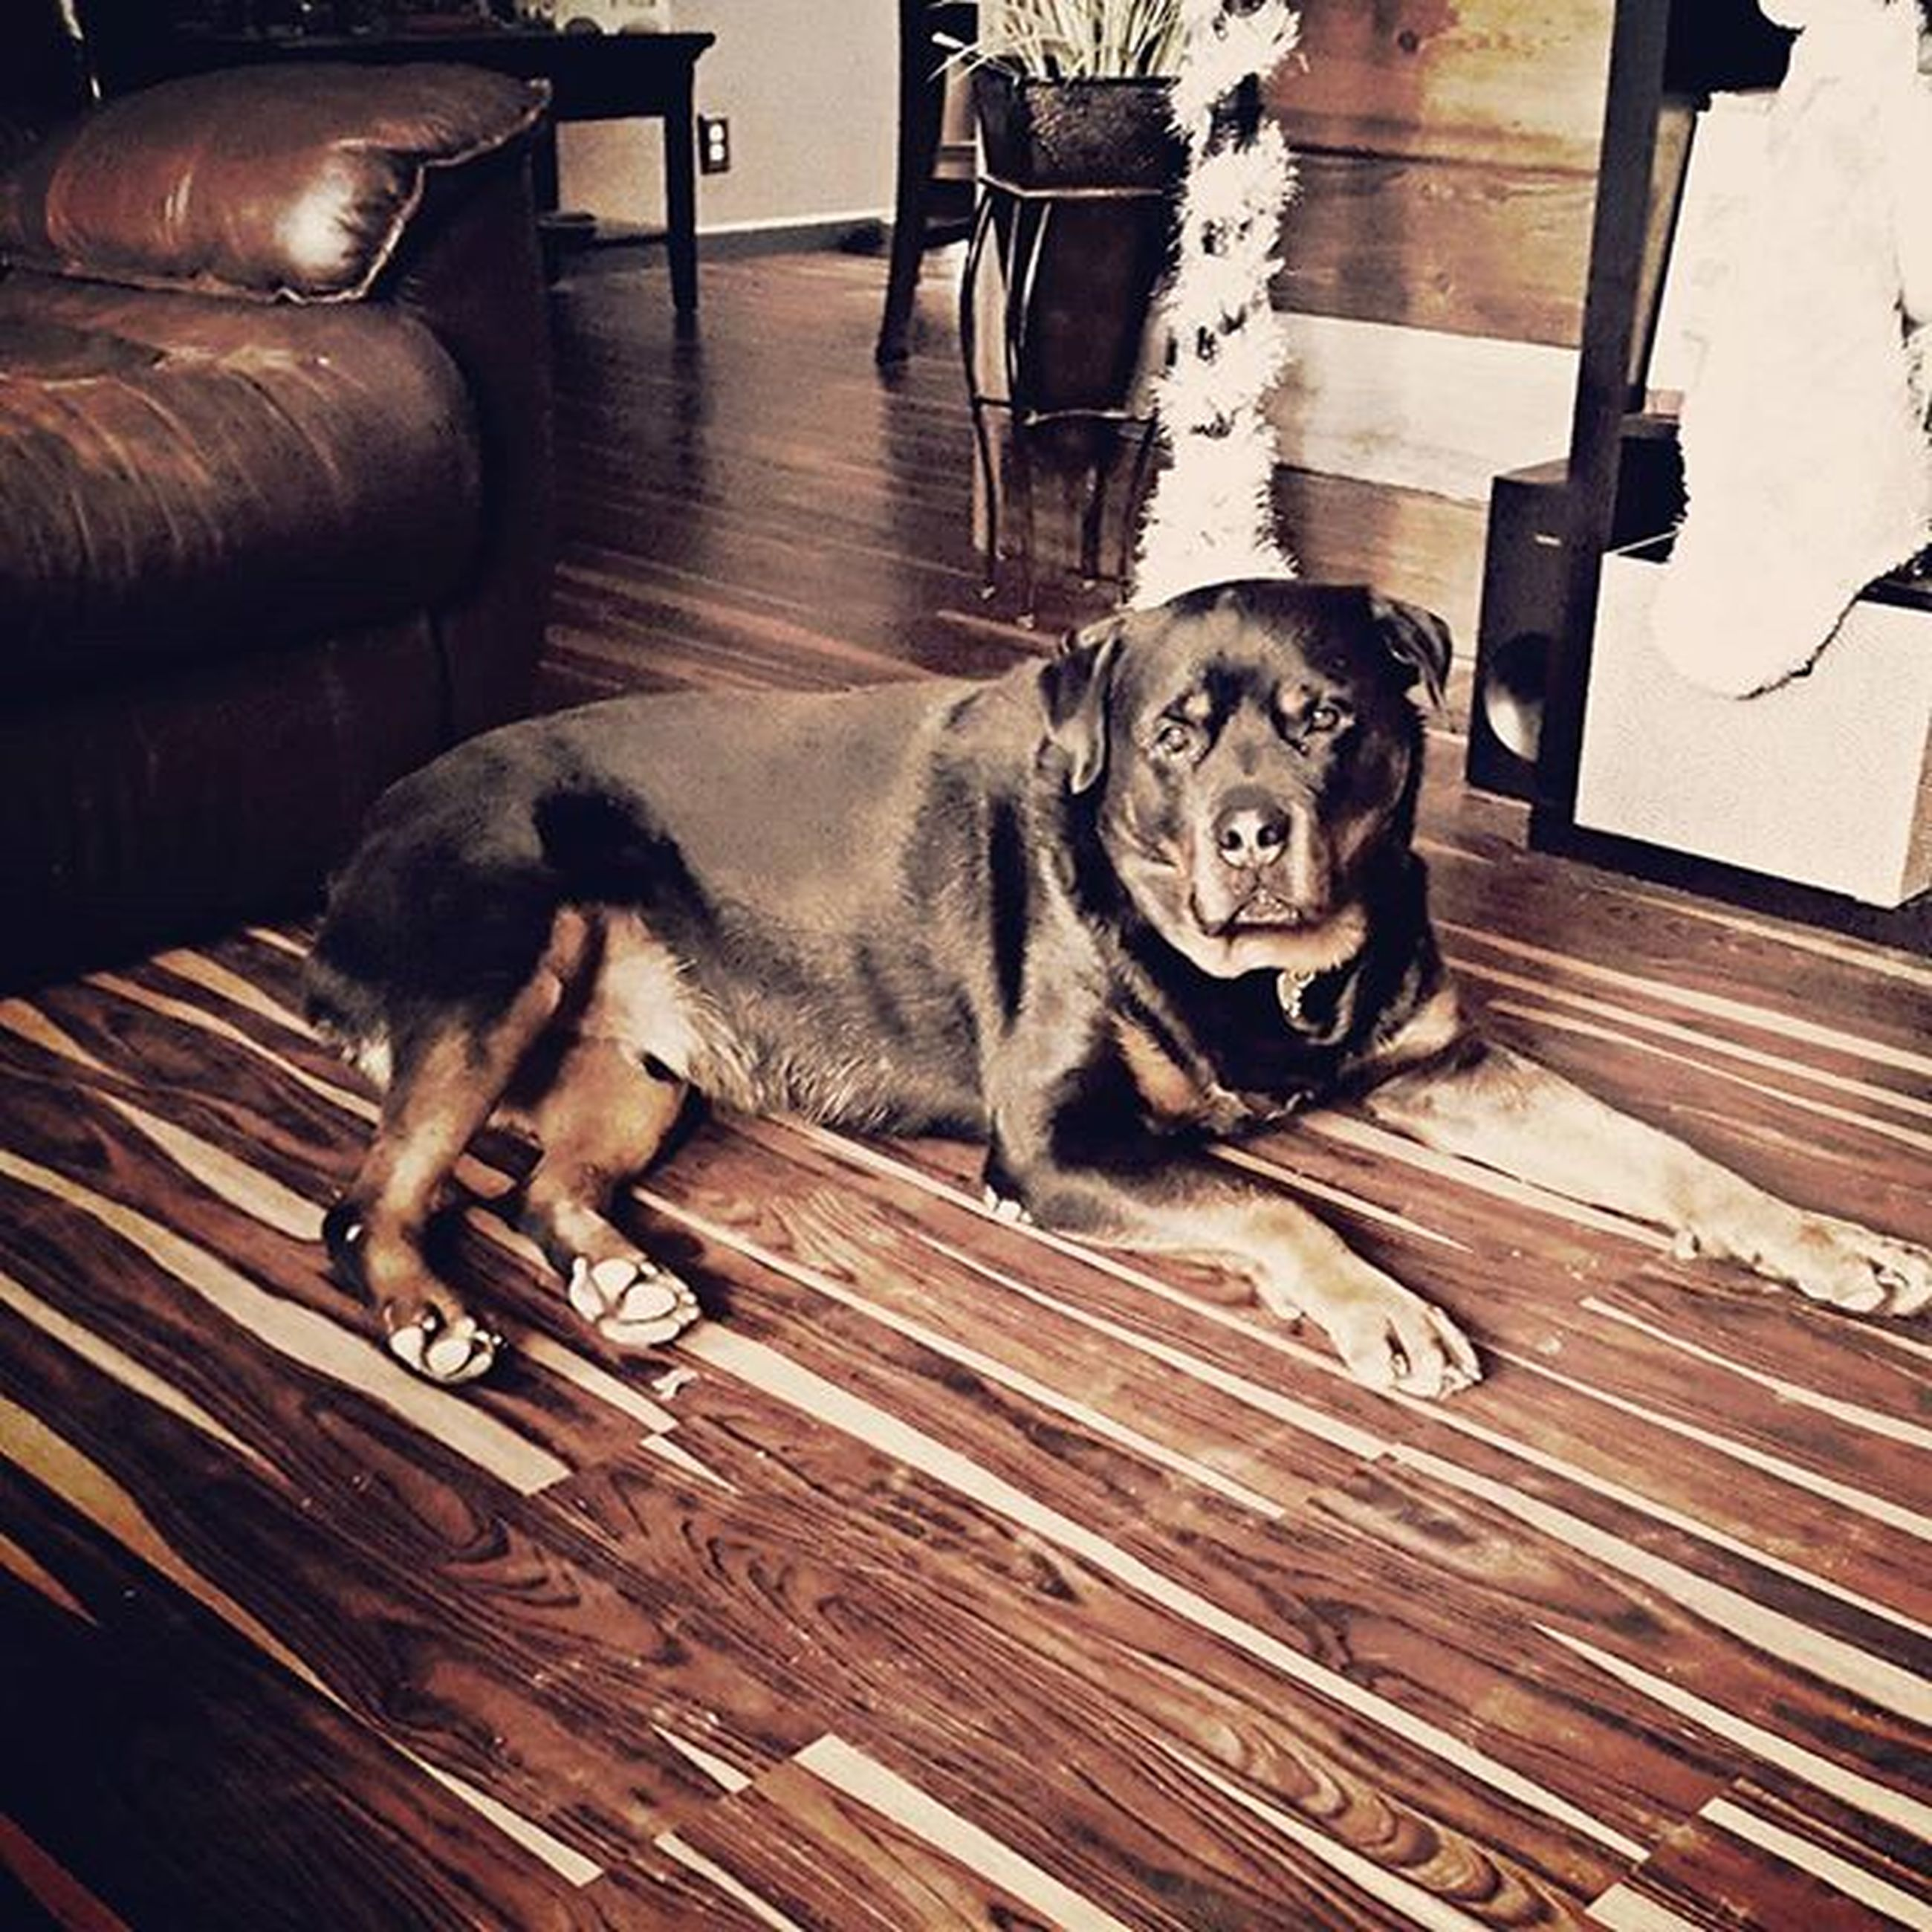 indoors, domestic animals, high angle view, animal themes, pets, mammal, one animal, sitting, dog, relaxation, wood - material, full length, home interior, lifestyles, hardwood floor, lying down, looking at camera, sofa